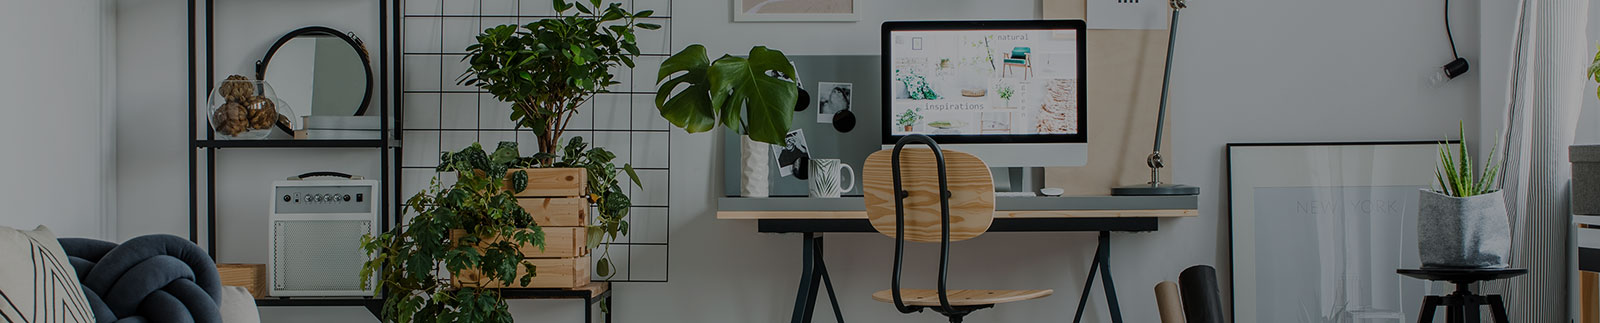 10 top tips for setting up a home office